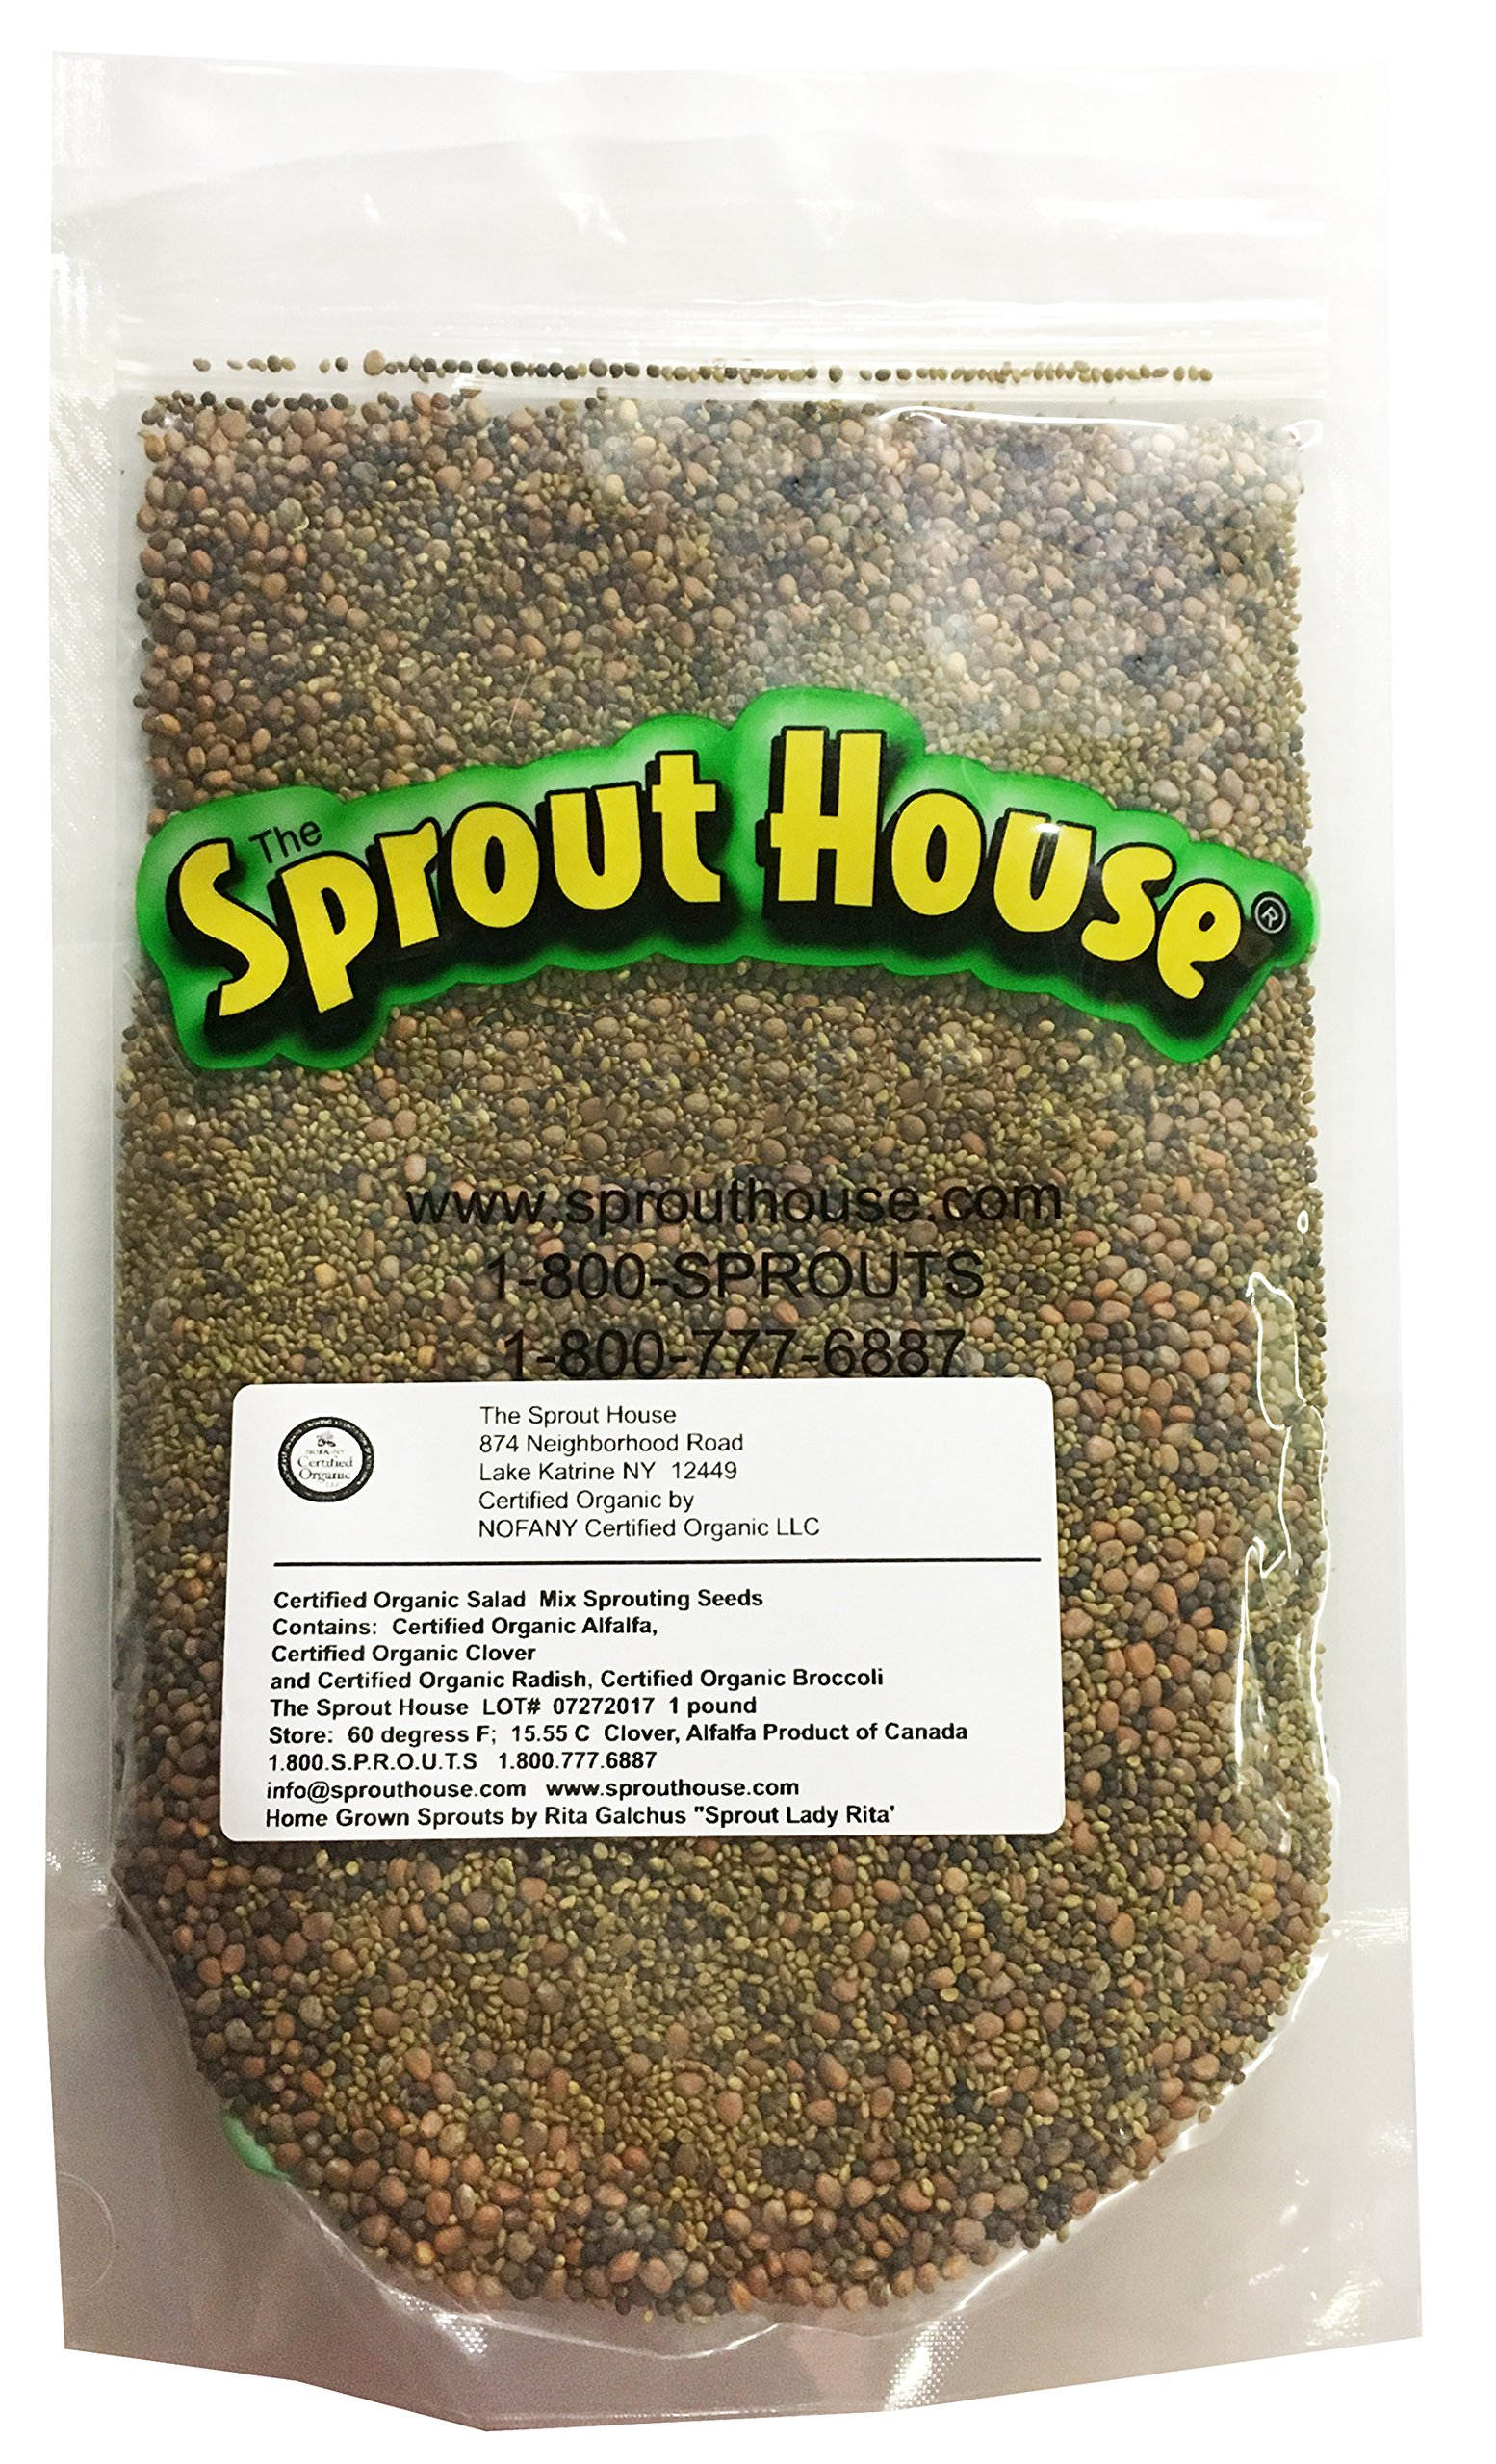 The Sprout House Certified Organic Non-gmo Sprouting Seeds Salad Mix Broccoli, Clover, Radish, Alfalfa 1 Pound by The Sprout House